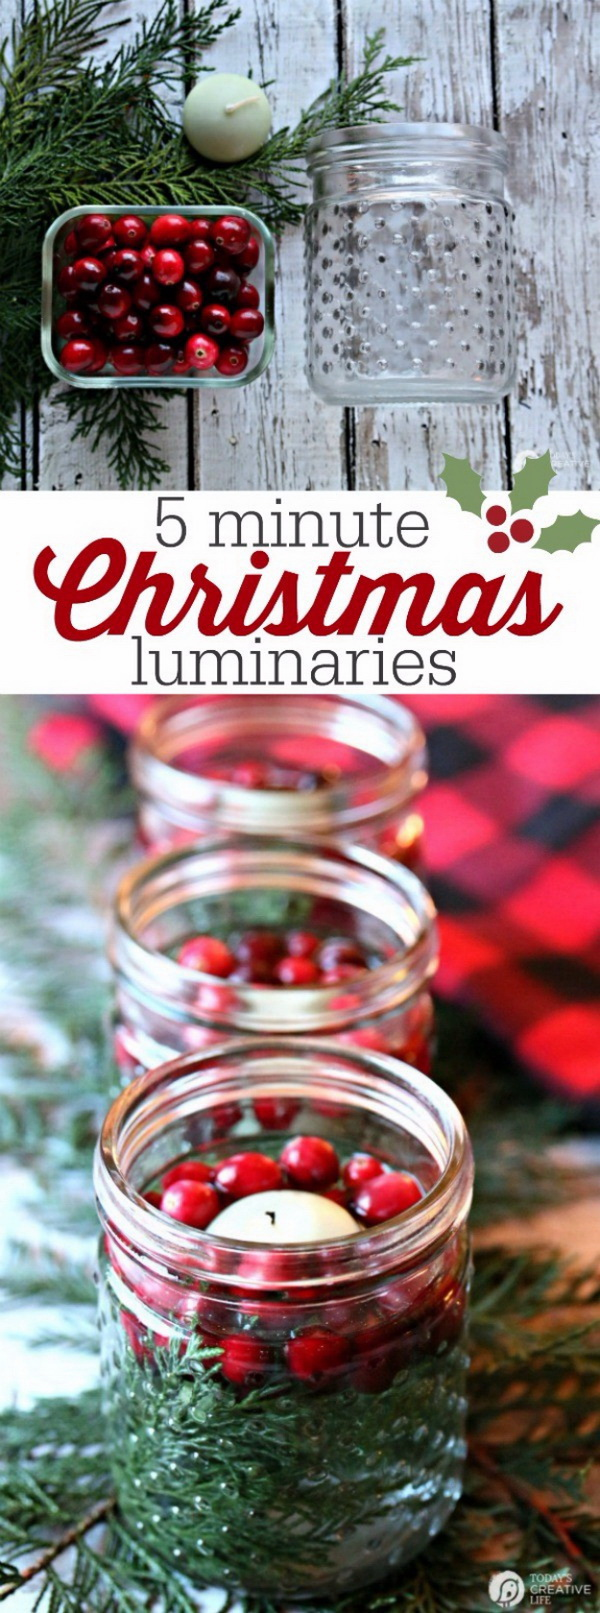 Homemade Projects & Ideas for Christmas Decoration: 5 Minute Christmas Luminaries.